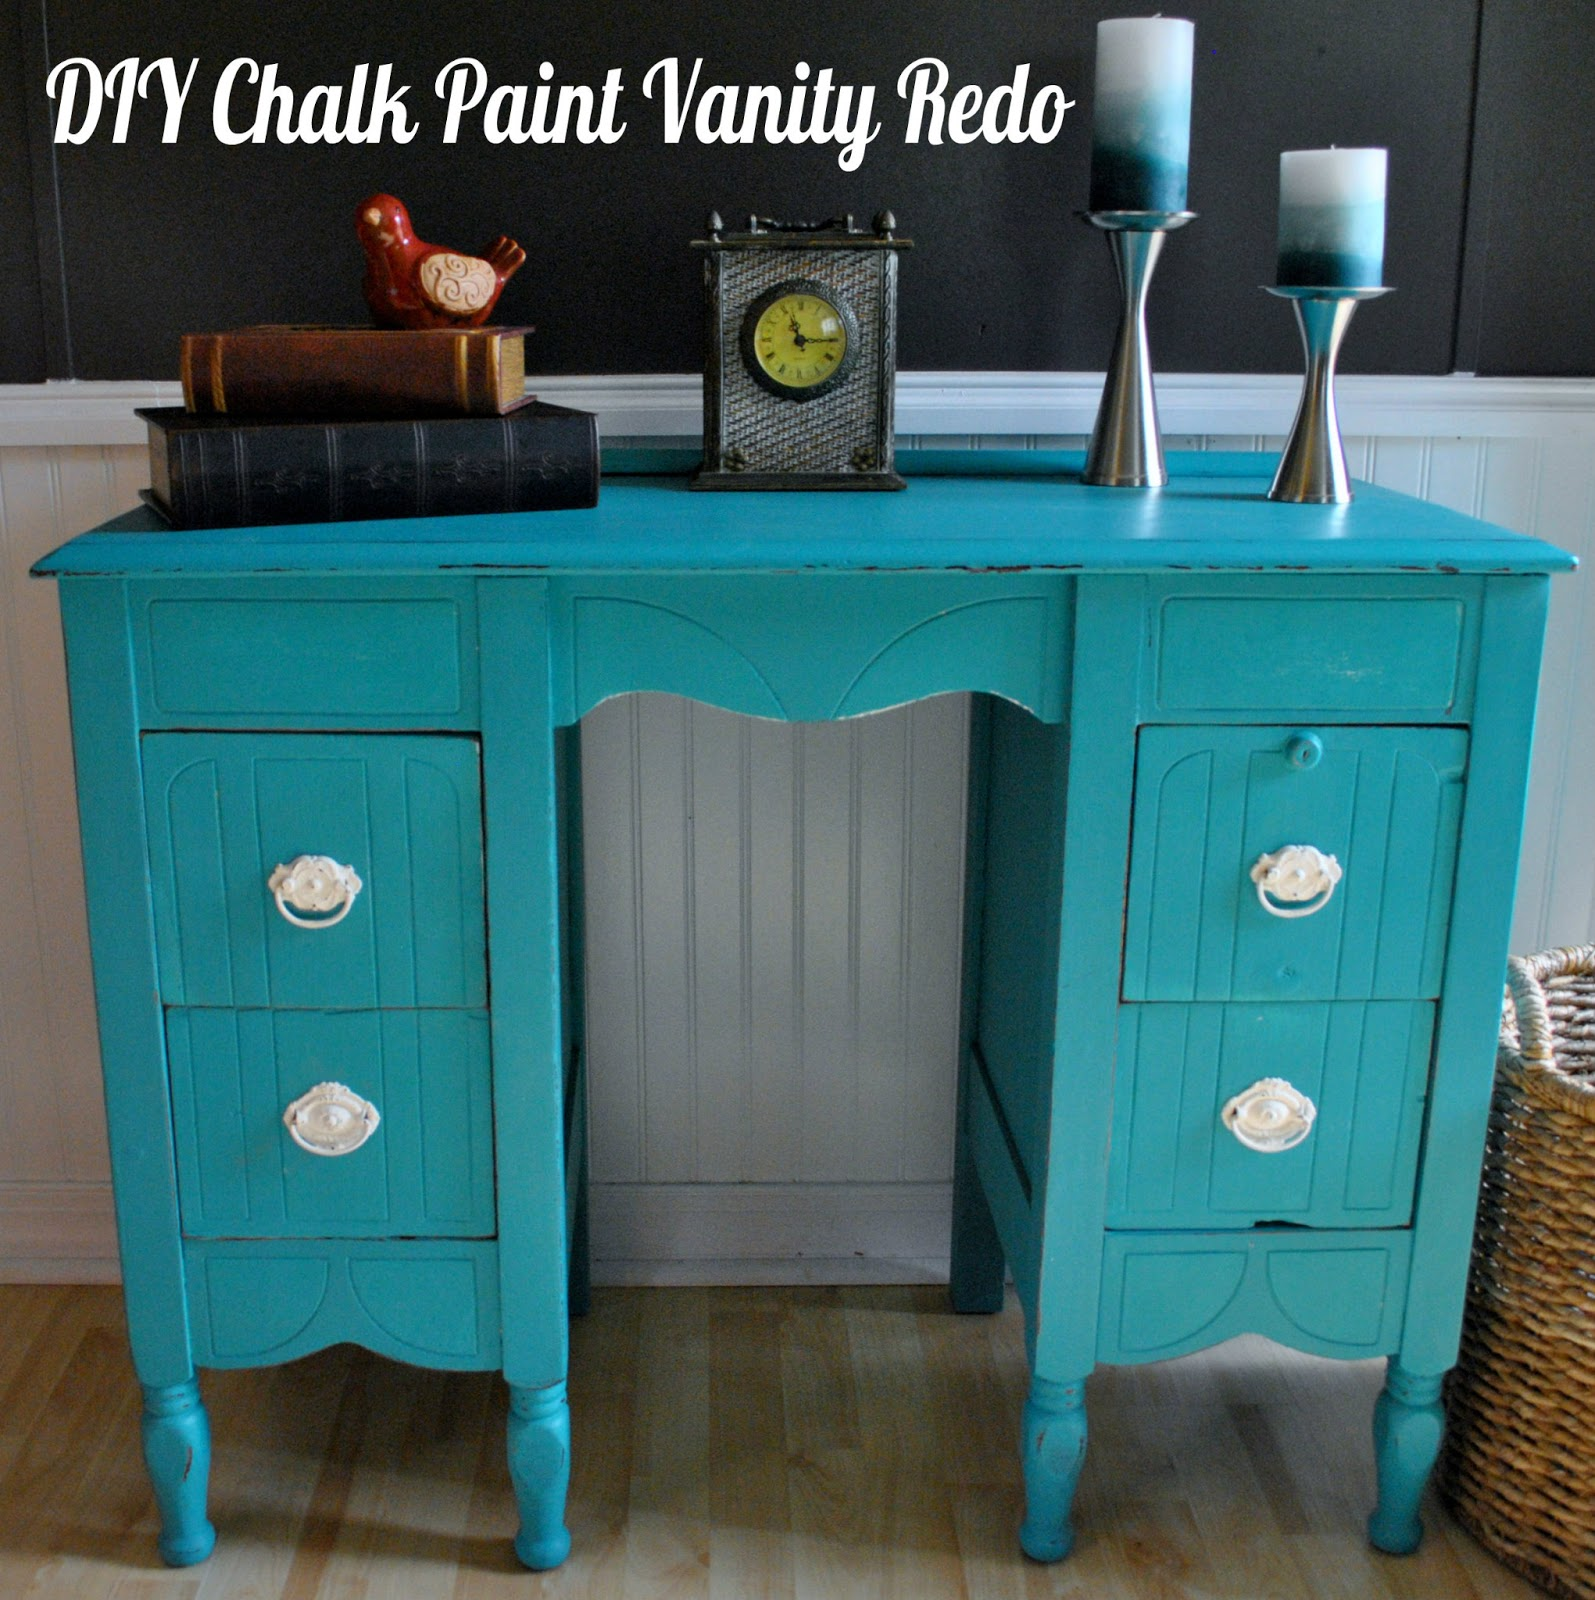 Life With 4 Boys Furniture Painting Diy Chalk Paint